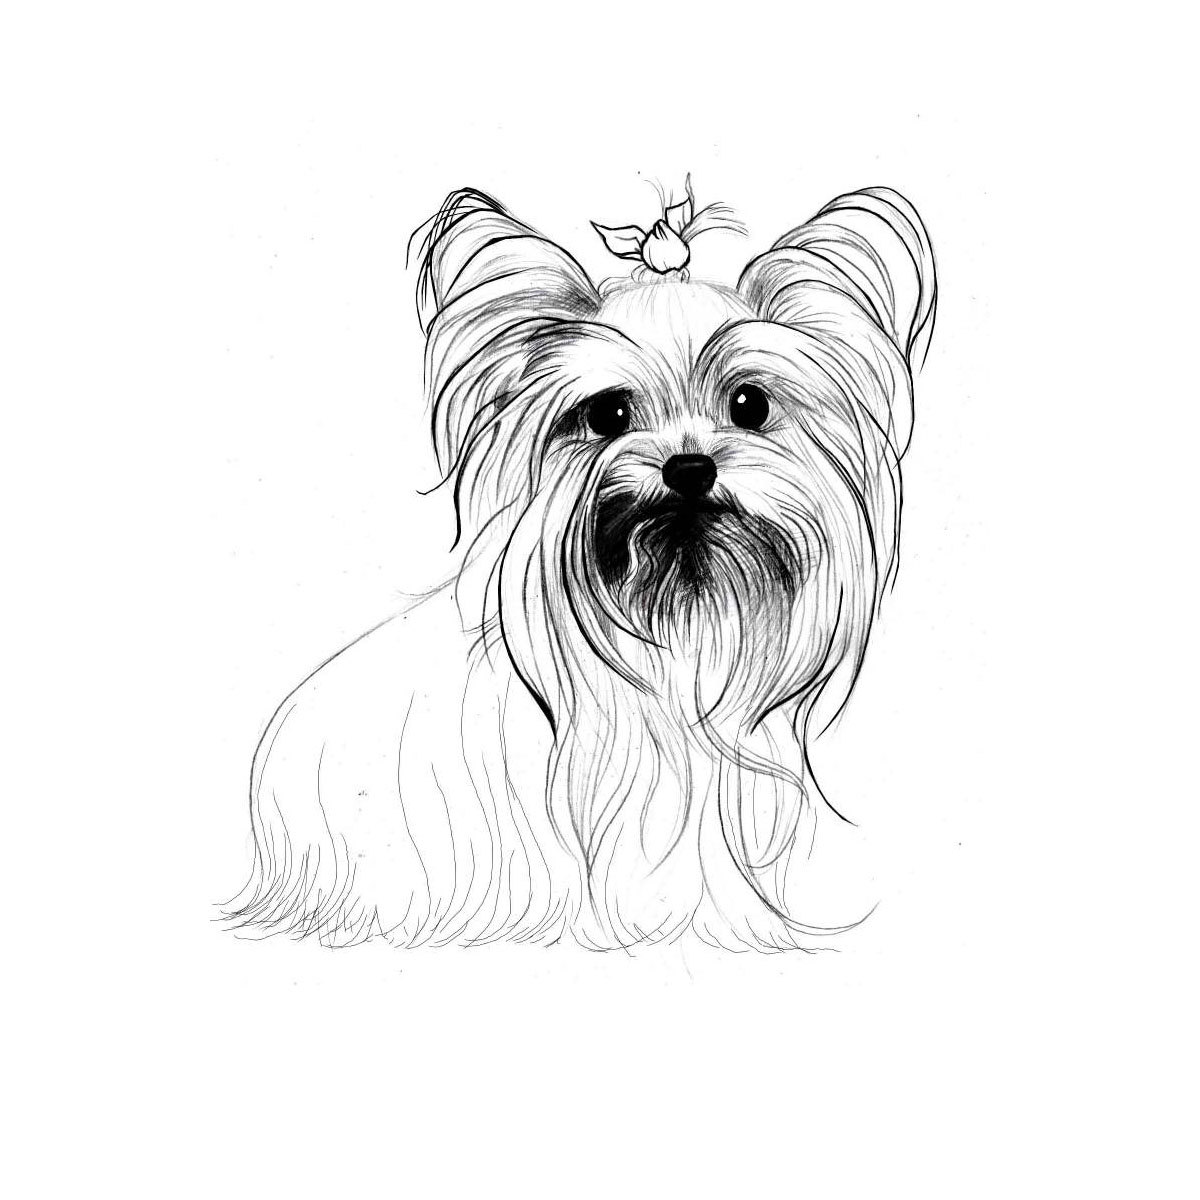 1200x1200 Line Drawing Of Yorkie. Minimalist, Line Drawings, Water Color